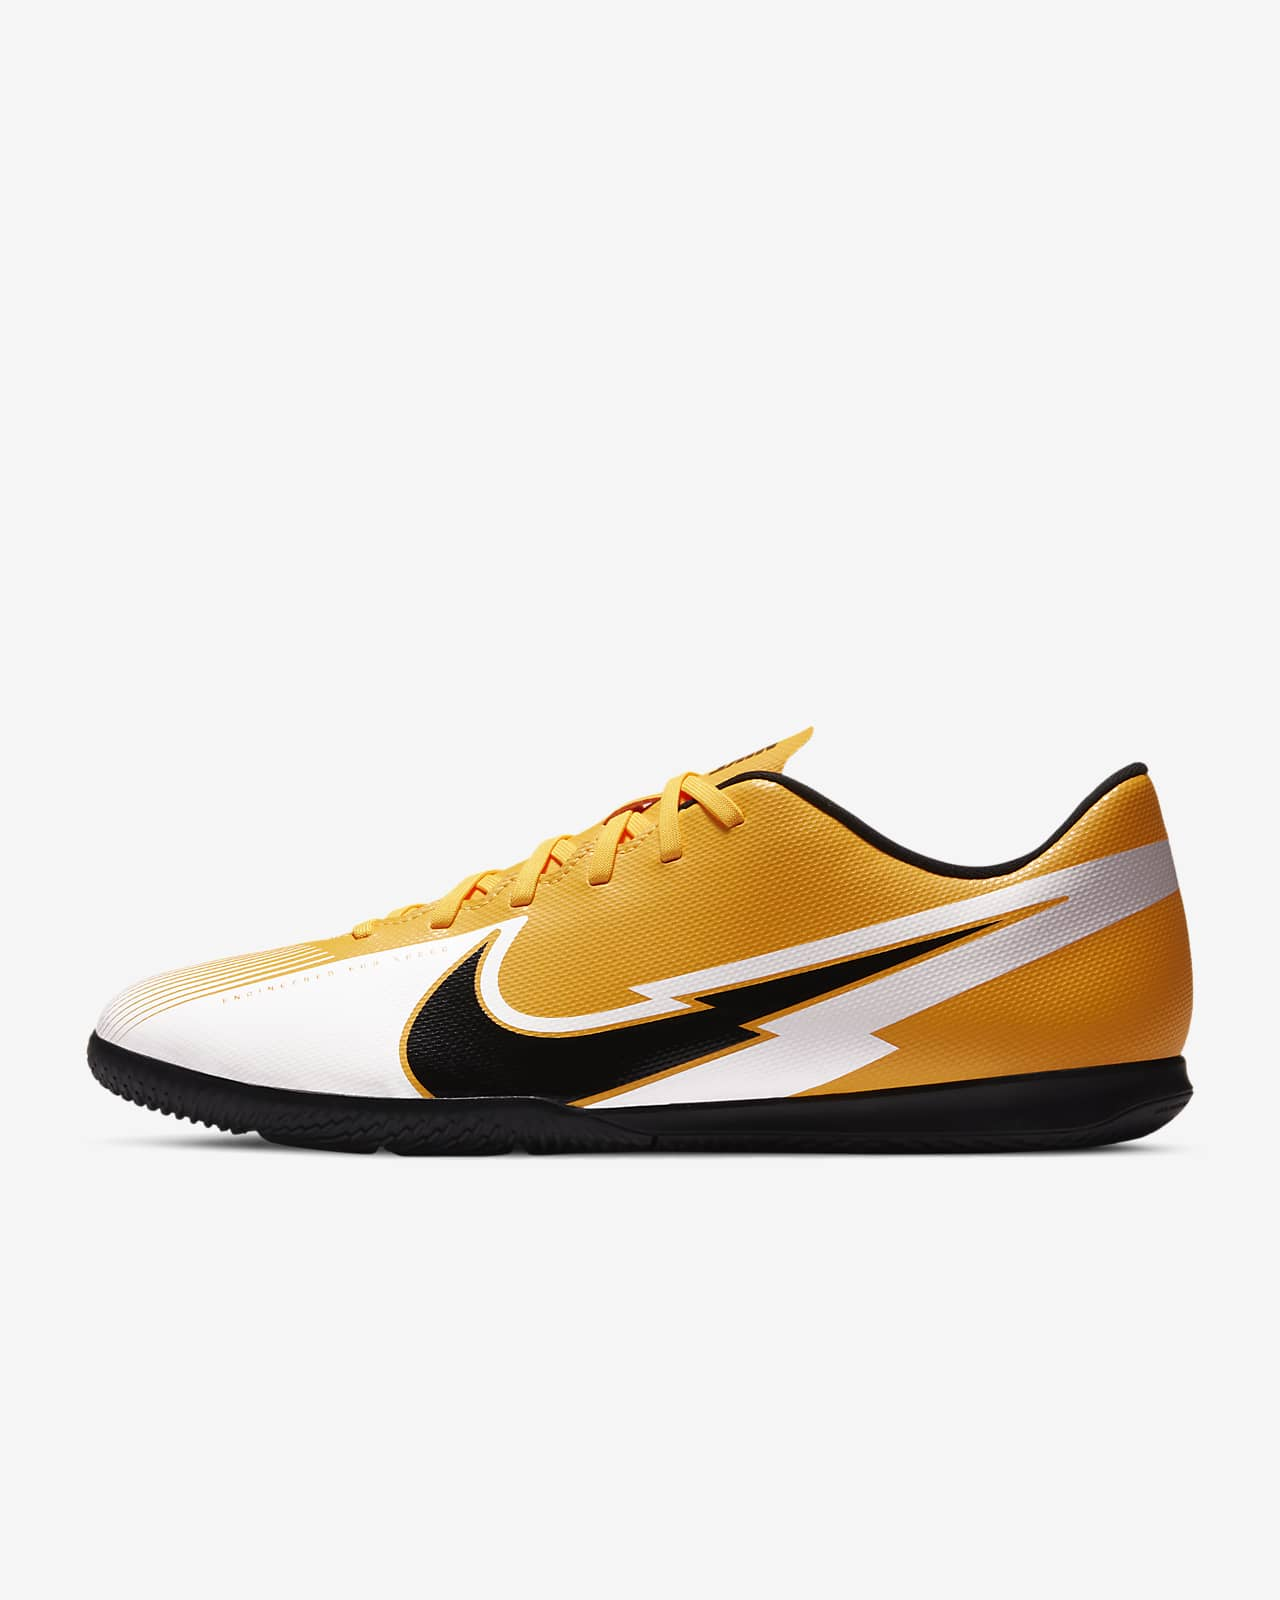 chaussure pour foot salle nike